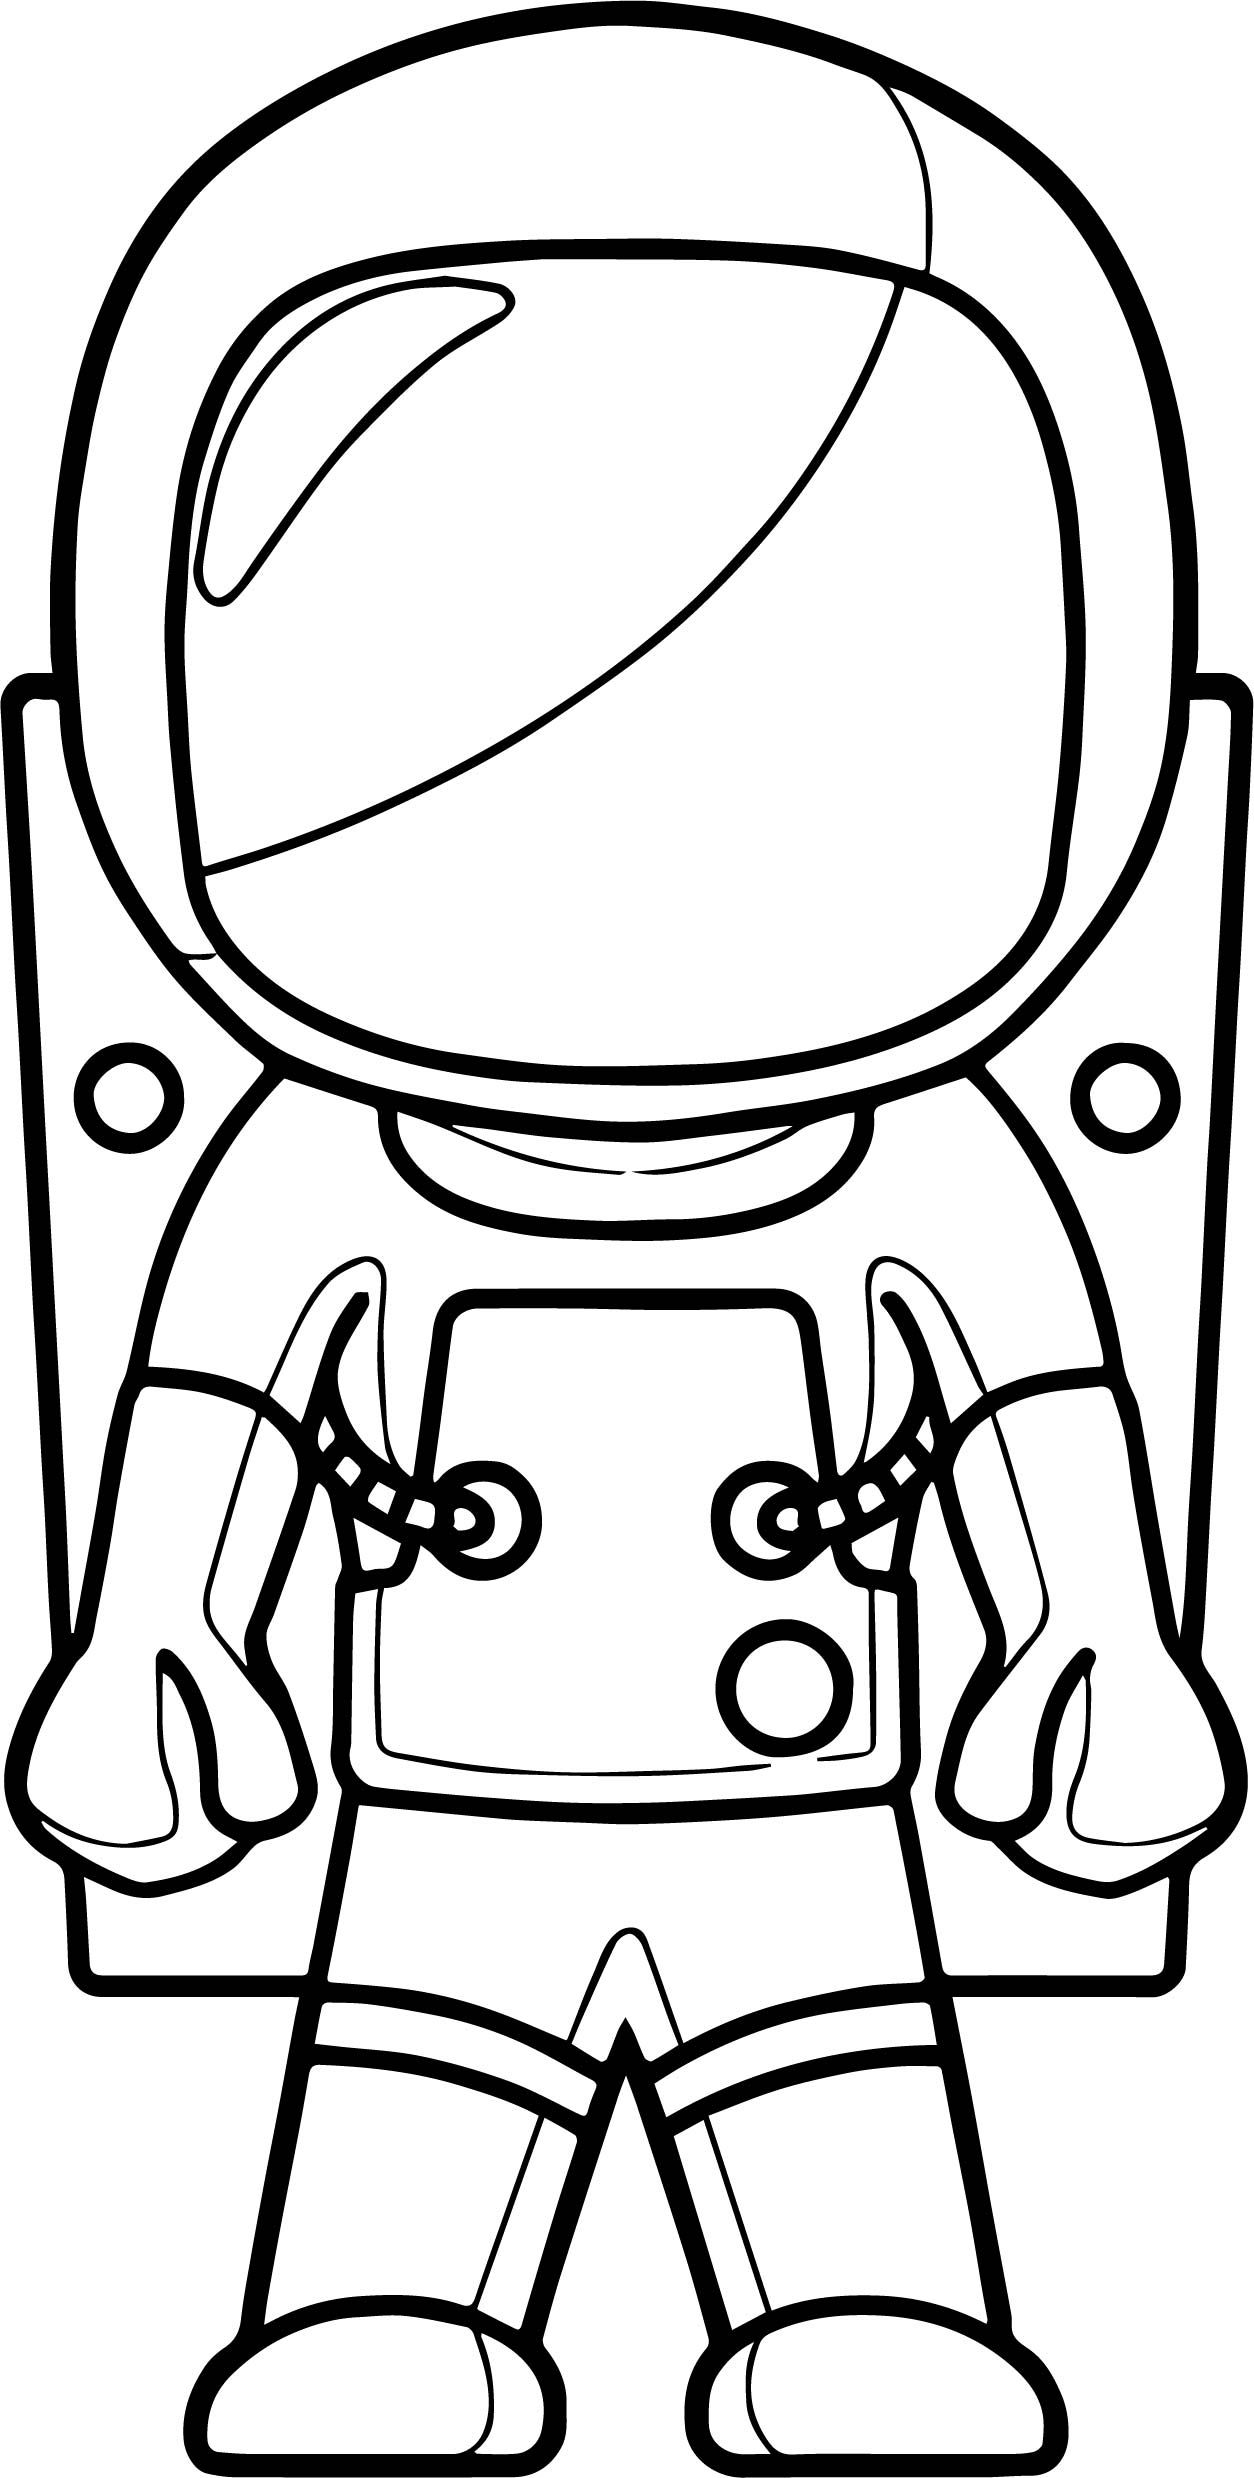 Nice Closed Astronaut Coloring Page Space Coloring Pages